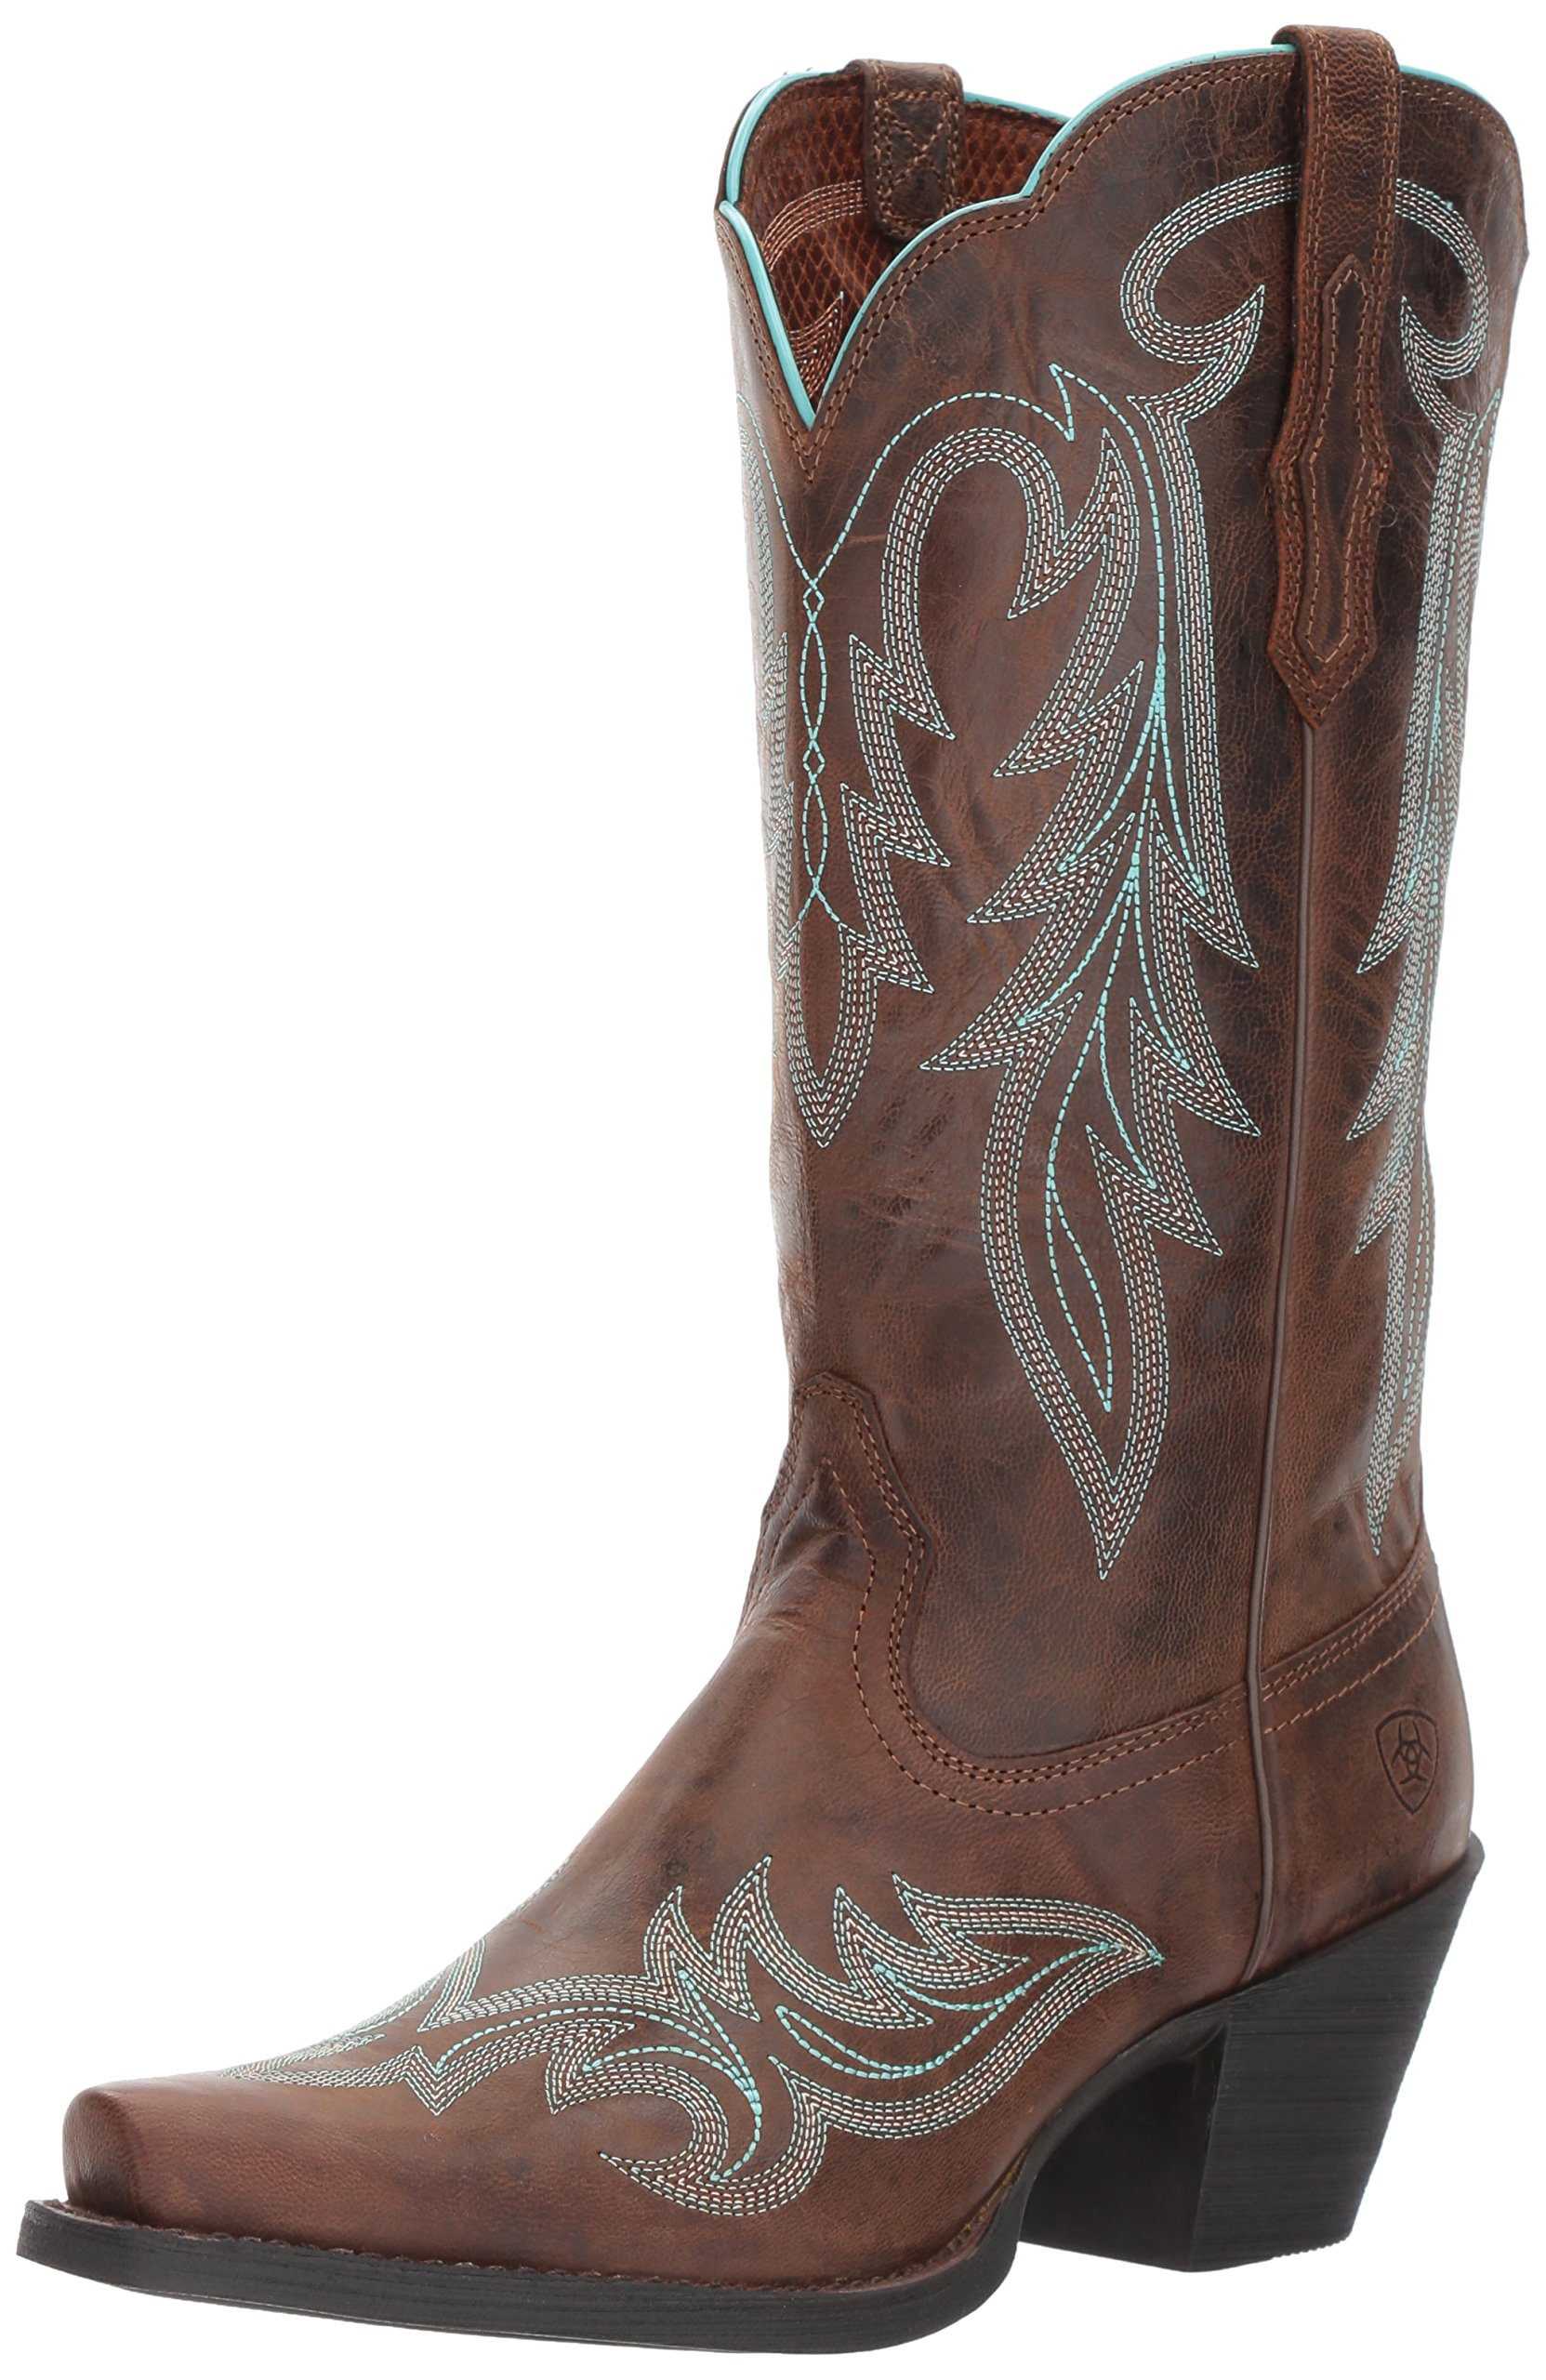 Ariat Women's Round up Renegade Work Boot, Barnwood, 8.5 B US by Ariat (Image #1)